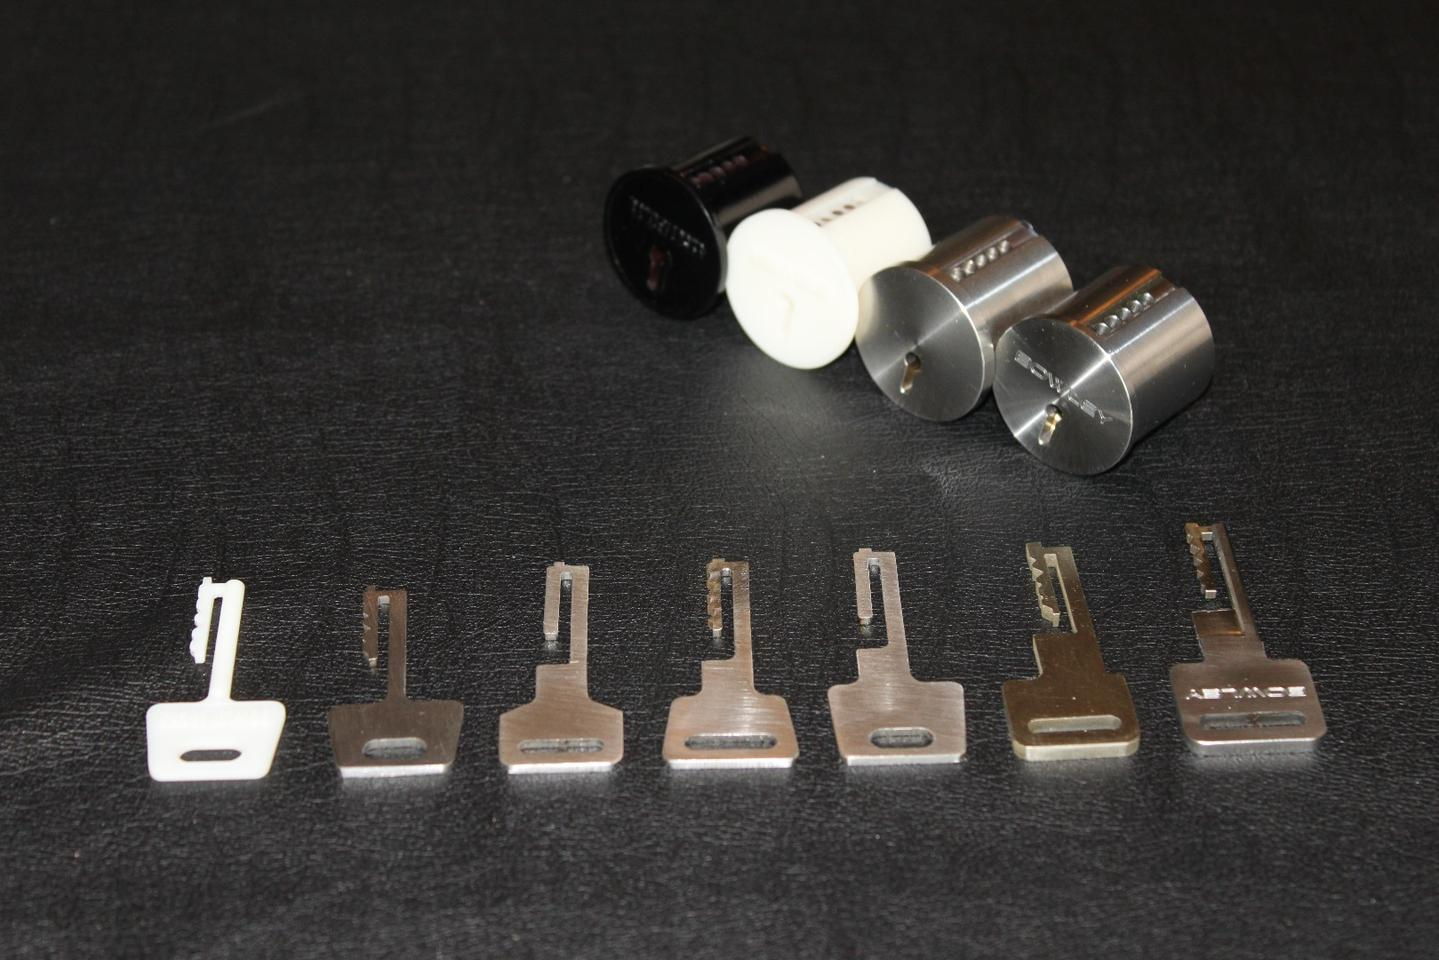 A collection of Bowley Lock prototypes